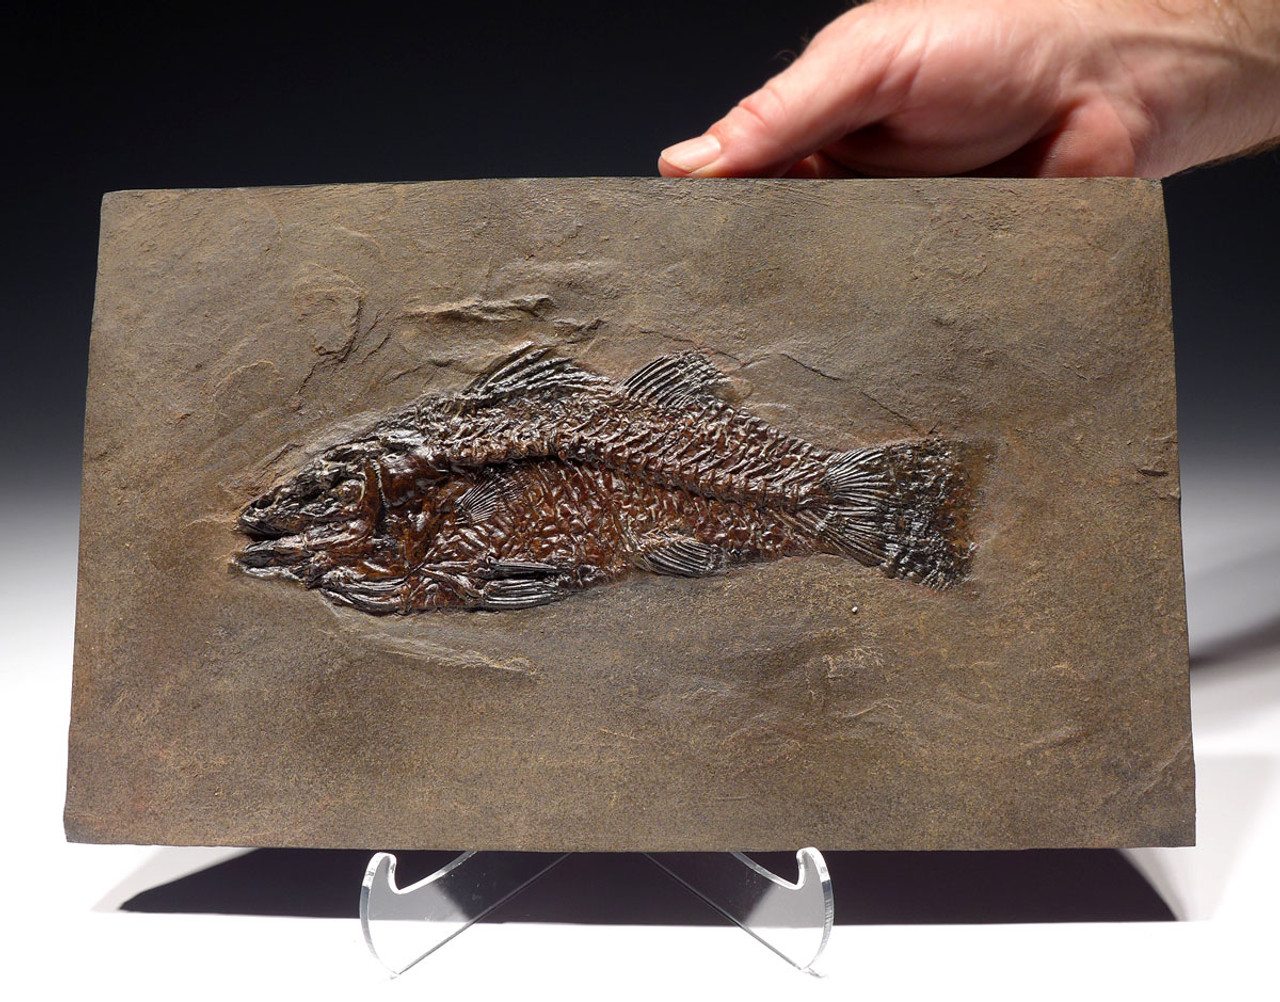 F124 - FINEST MUSEUM GRADE PALEOPERCA PERCH FOSSIL FISH FROM THE FAMOUS MESSEL SITE IN GERMANY